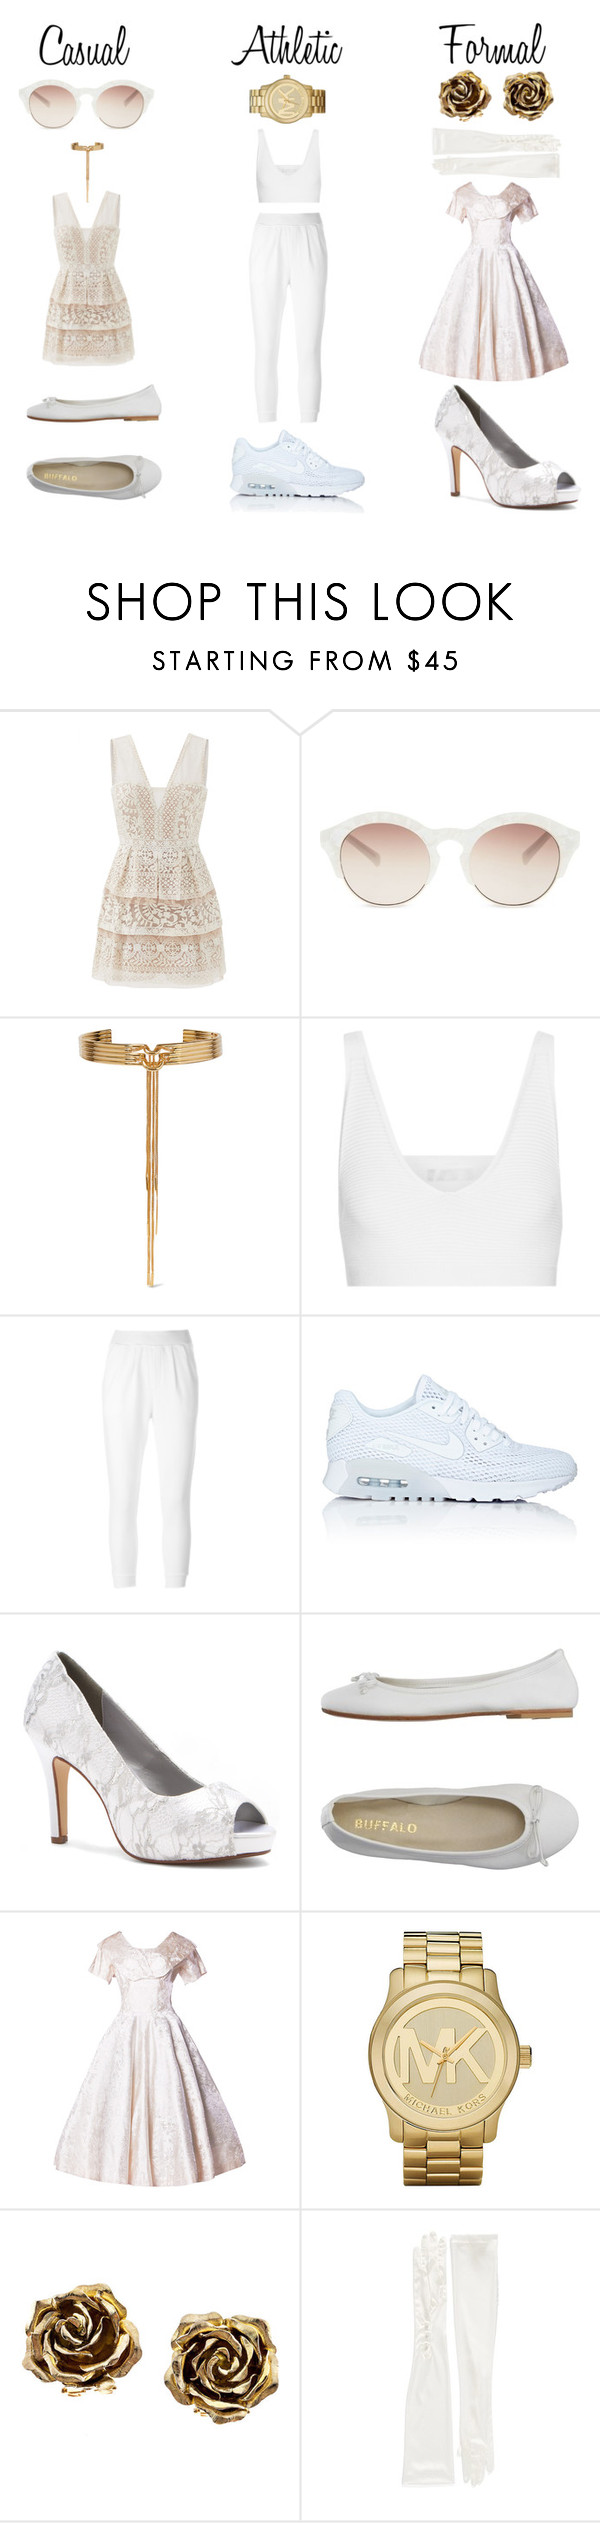 """""""The White Queen's New Clothes"""" by avmpempire ❤ liked on Polyvore featuring BCBGMAXAZRIA, self-portrait, Eddie Borgo, Cushnie Et Ochs, Maison Kitsuné, NIKE, Dyeables, DIENNEG, Michael Kors and Tiffany & Co."""